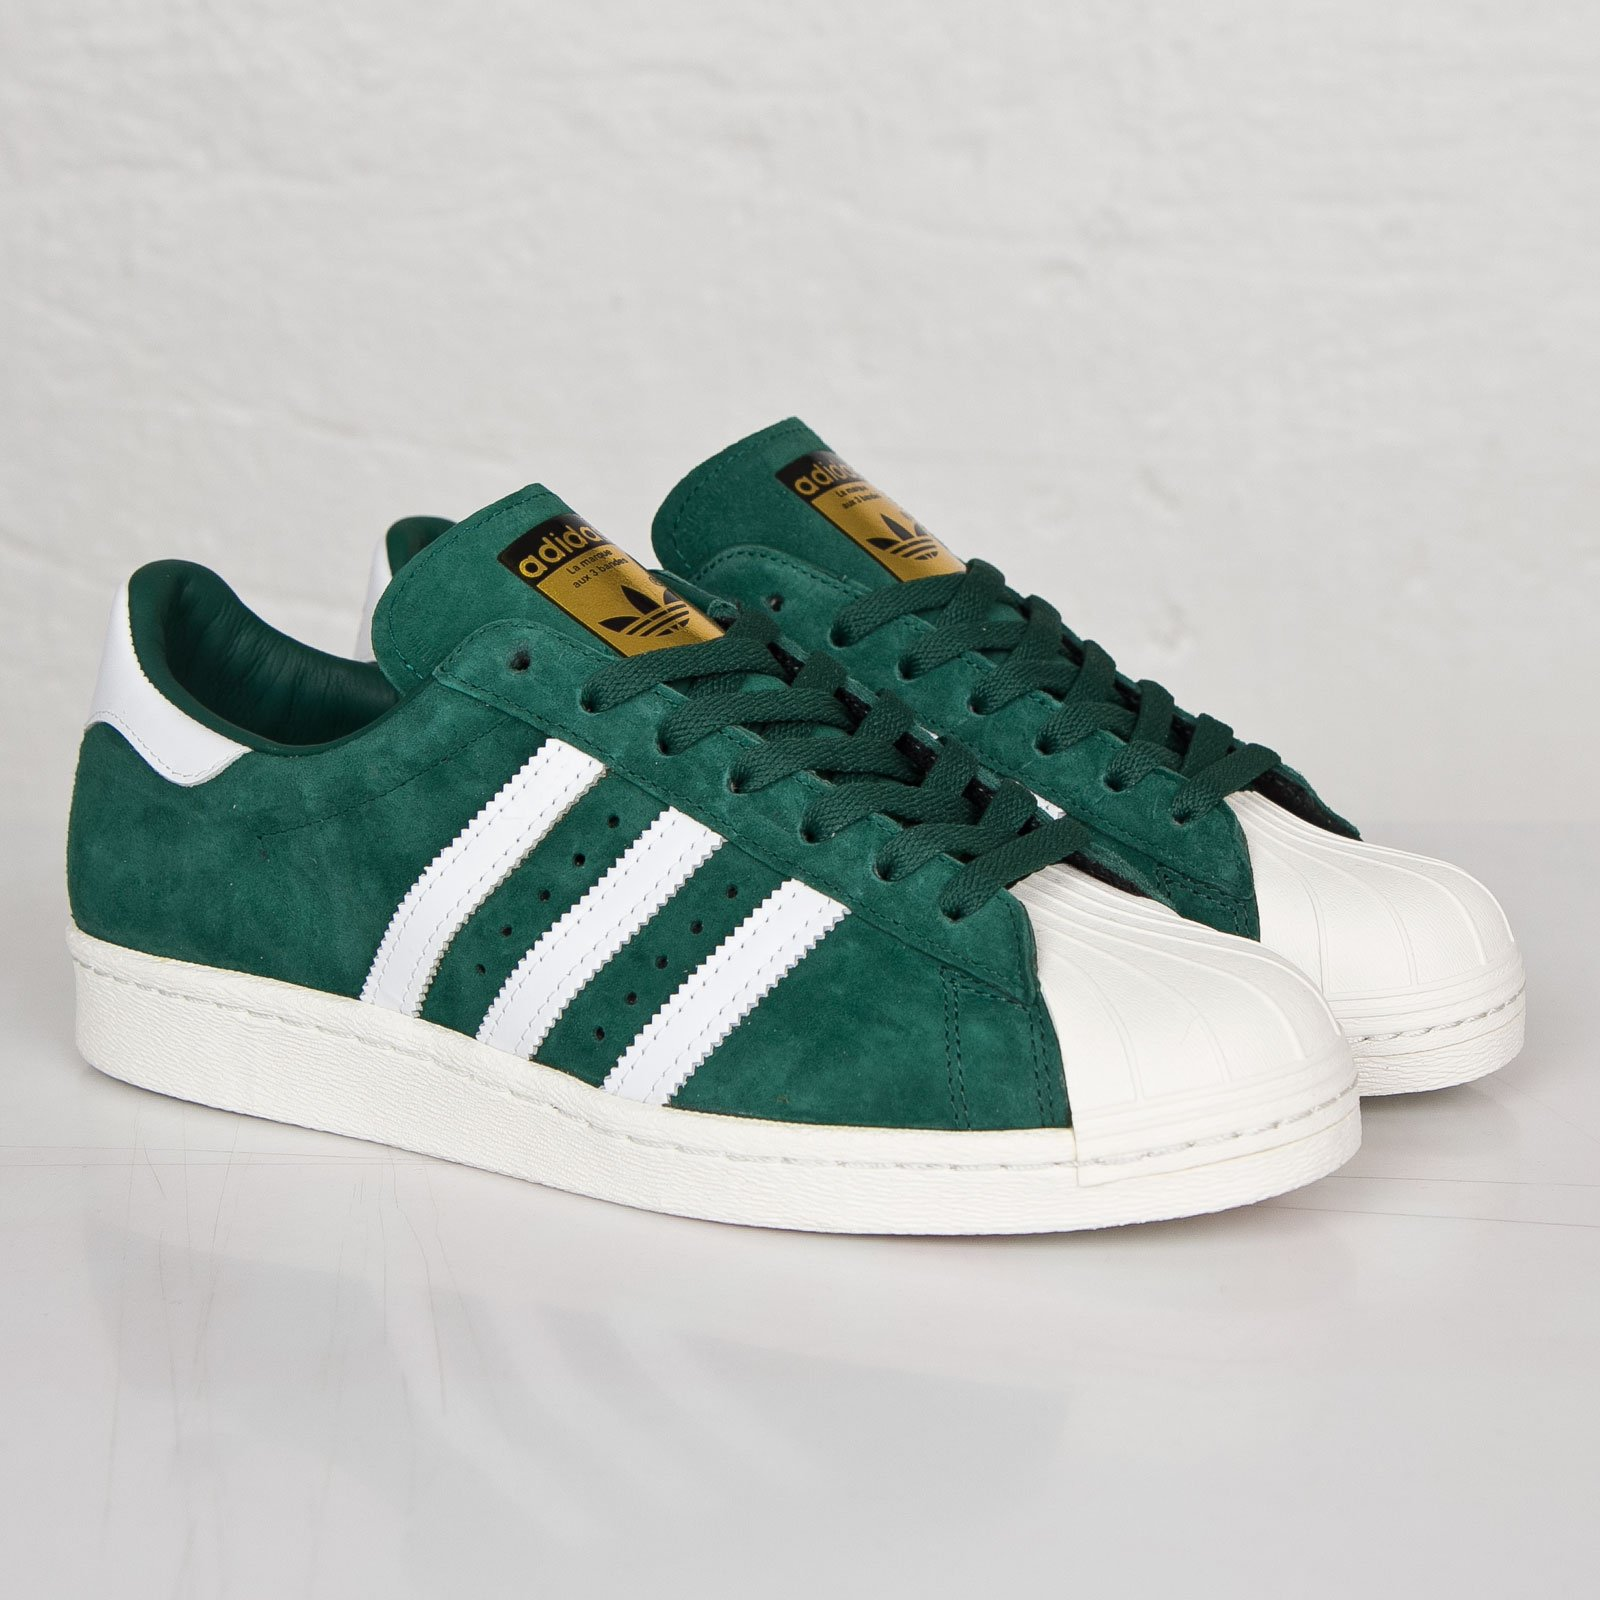 size 40 bb5dc c5f82 adidas Superstar 80s Deluxe Suede